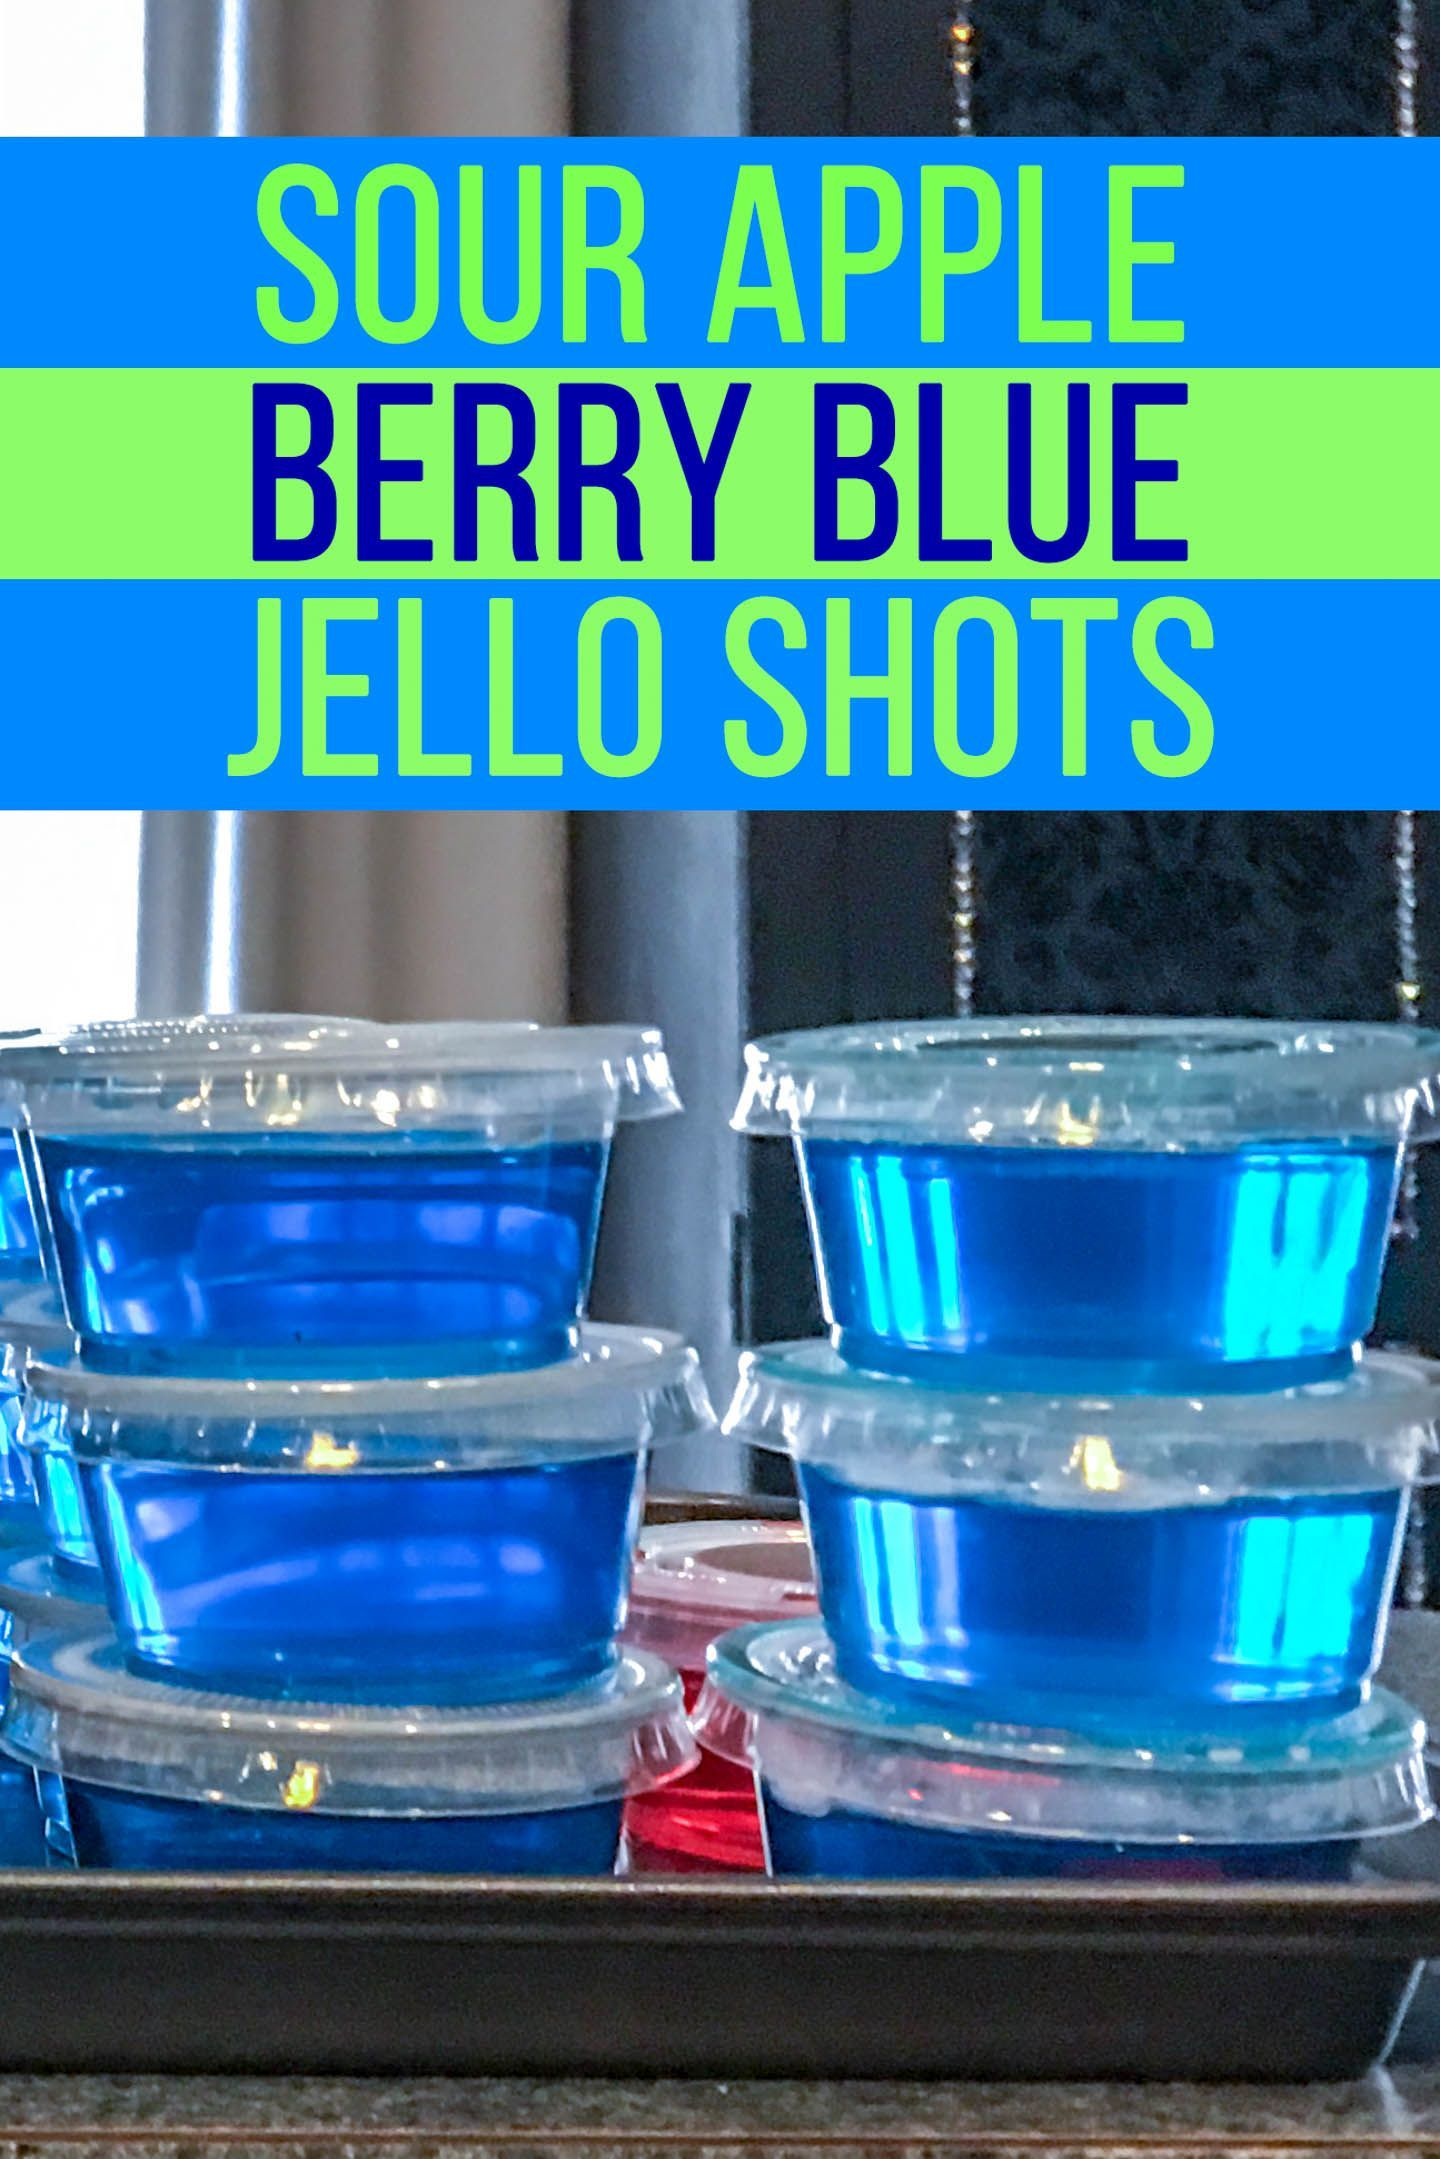 This sour apple blue jello shots recipe is delicious! Made with sour apple pucker, berry blue jello and vodka (optionally), it's really easy to make and tastes delicious. Perfect for any kind of party! #fromhousetohome #partyideas #drinks #cocktails #bluejelloshots #jelloshots #jelloshots #jelloshots